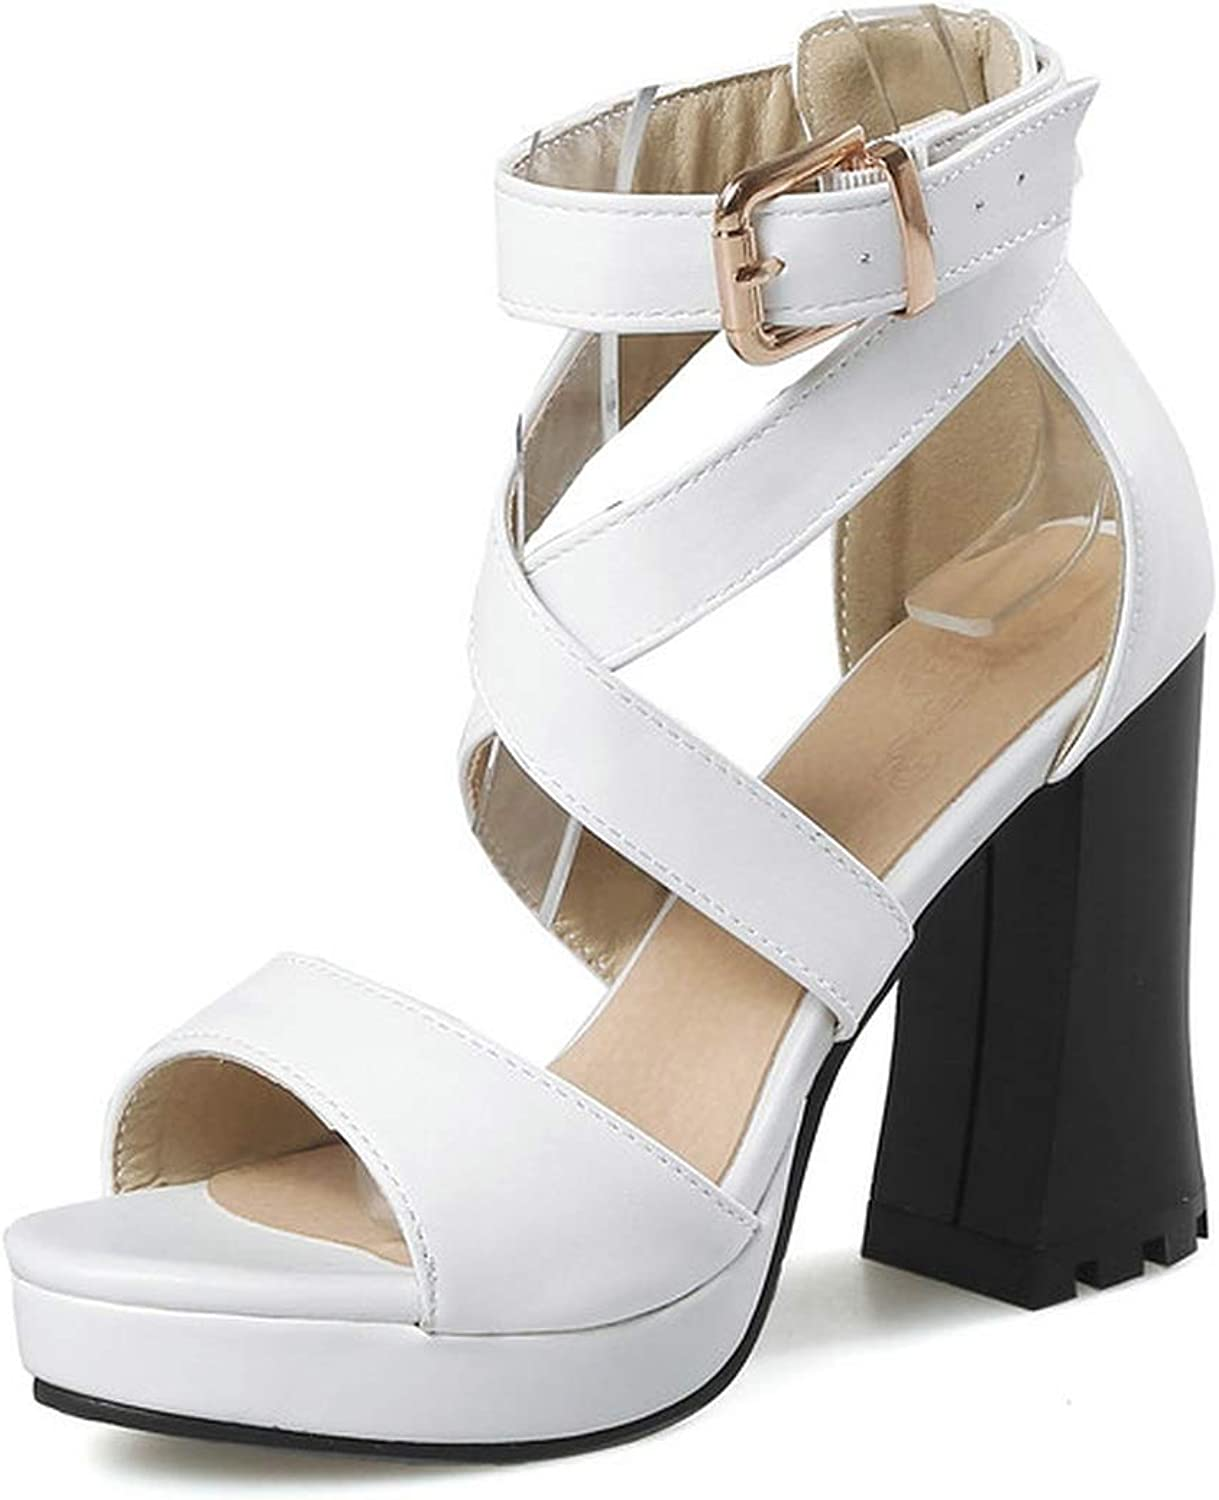 Women Sandals Pu Leather Square High Heel All Match Women shoes,